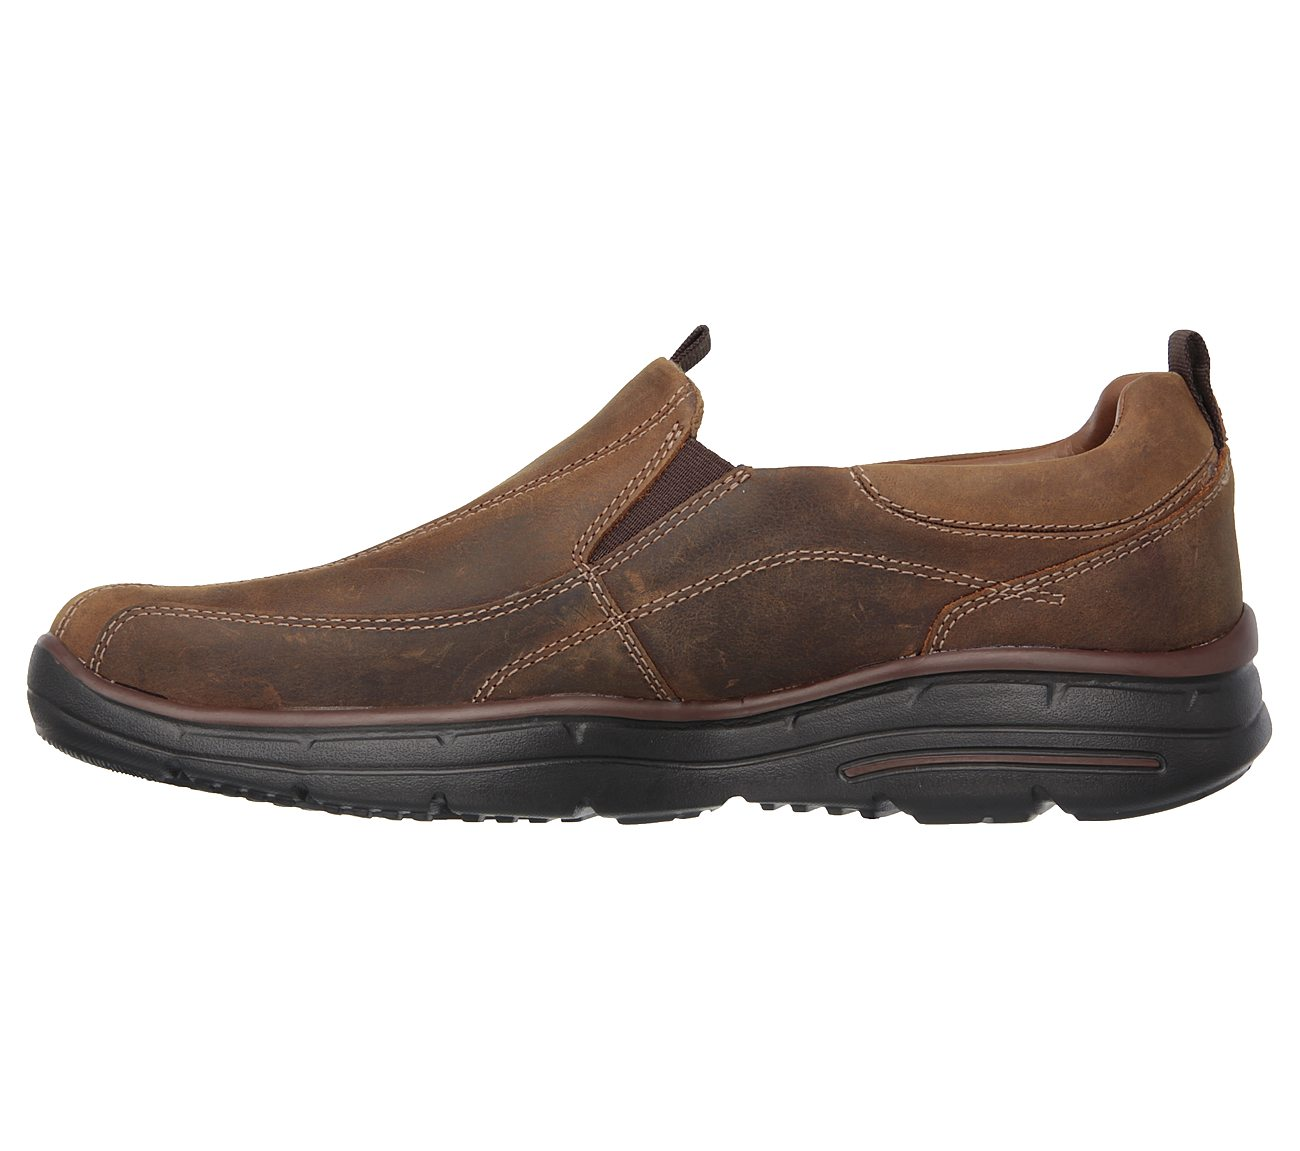 Men's Relaxed Fit: Glides - Docklands 2015 online manchester great sale cheap price cheap buy authentic cheap supply rHbdkU0Q